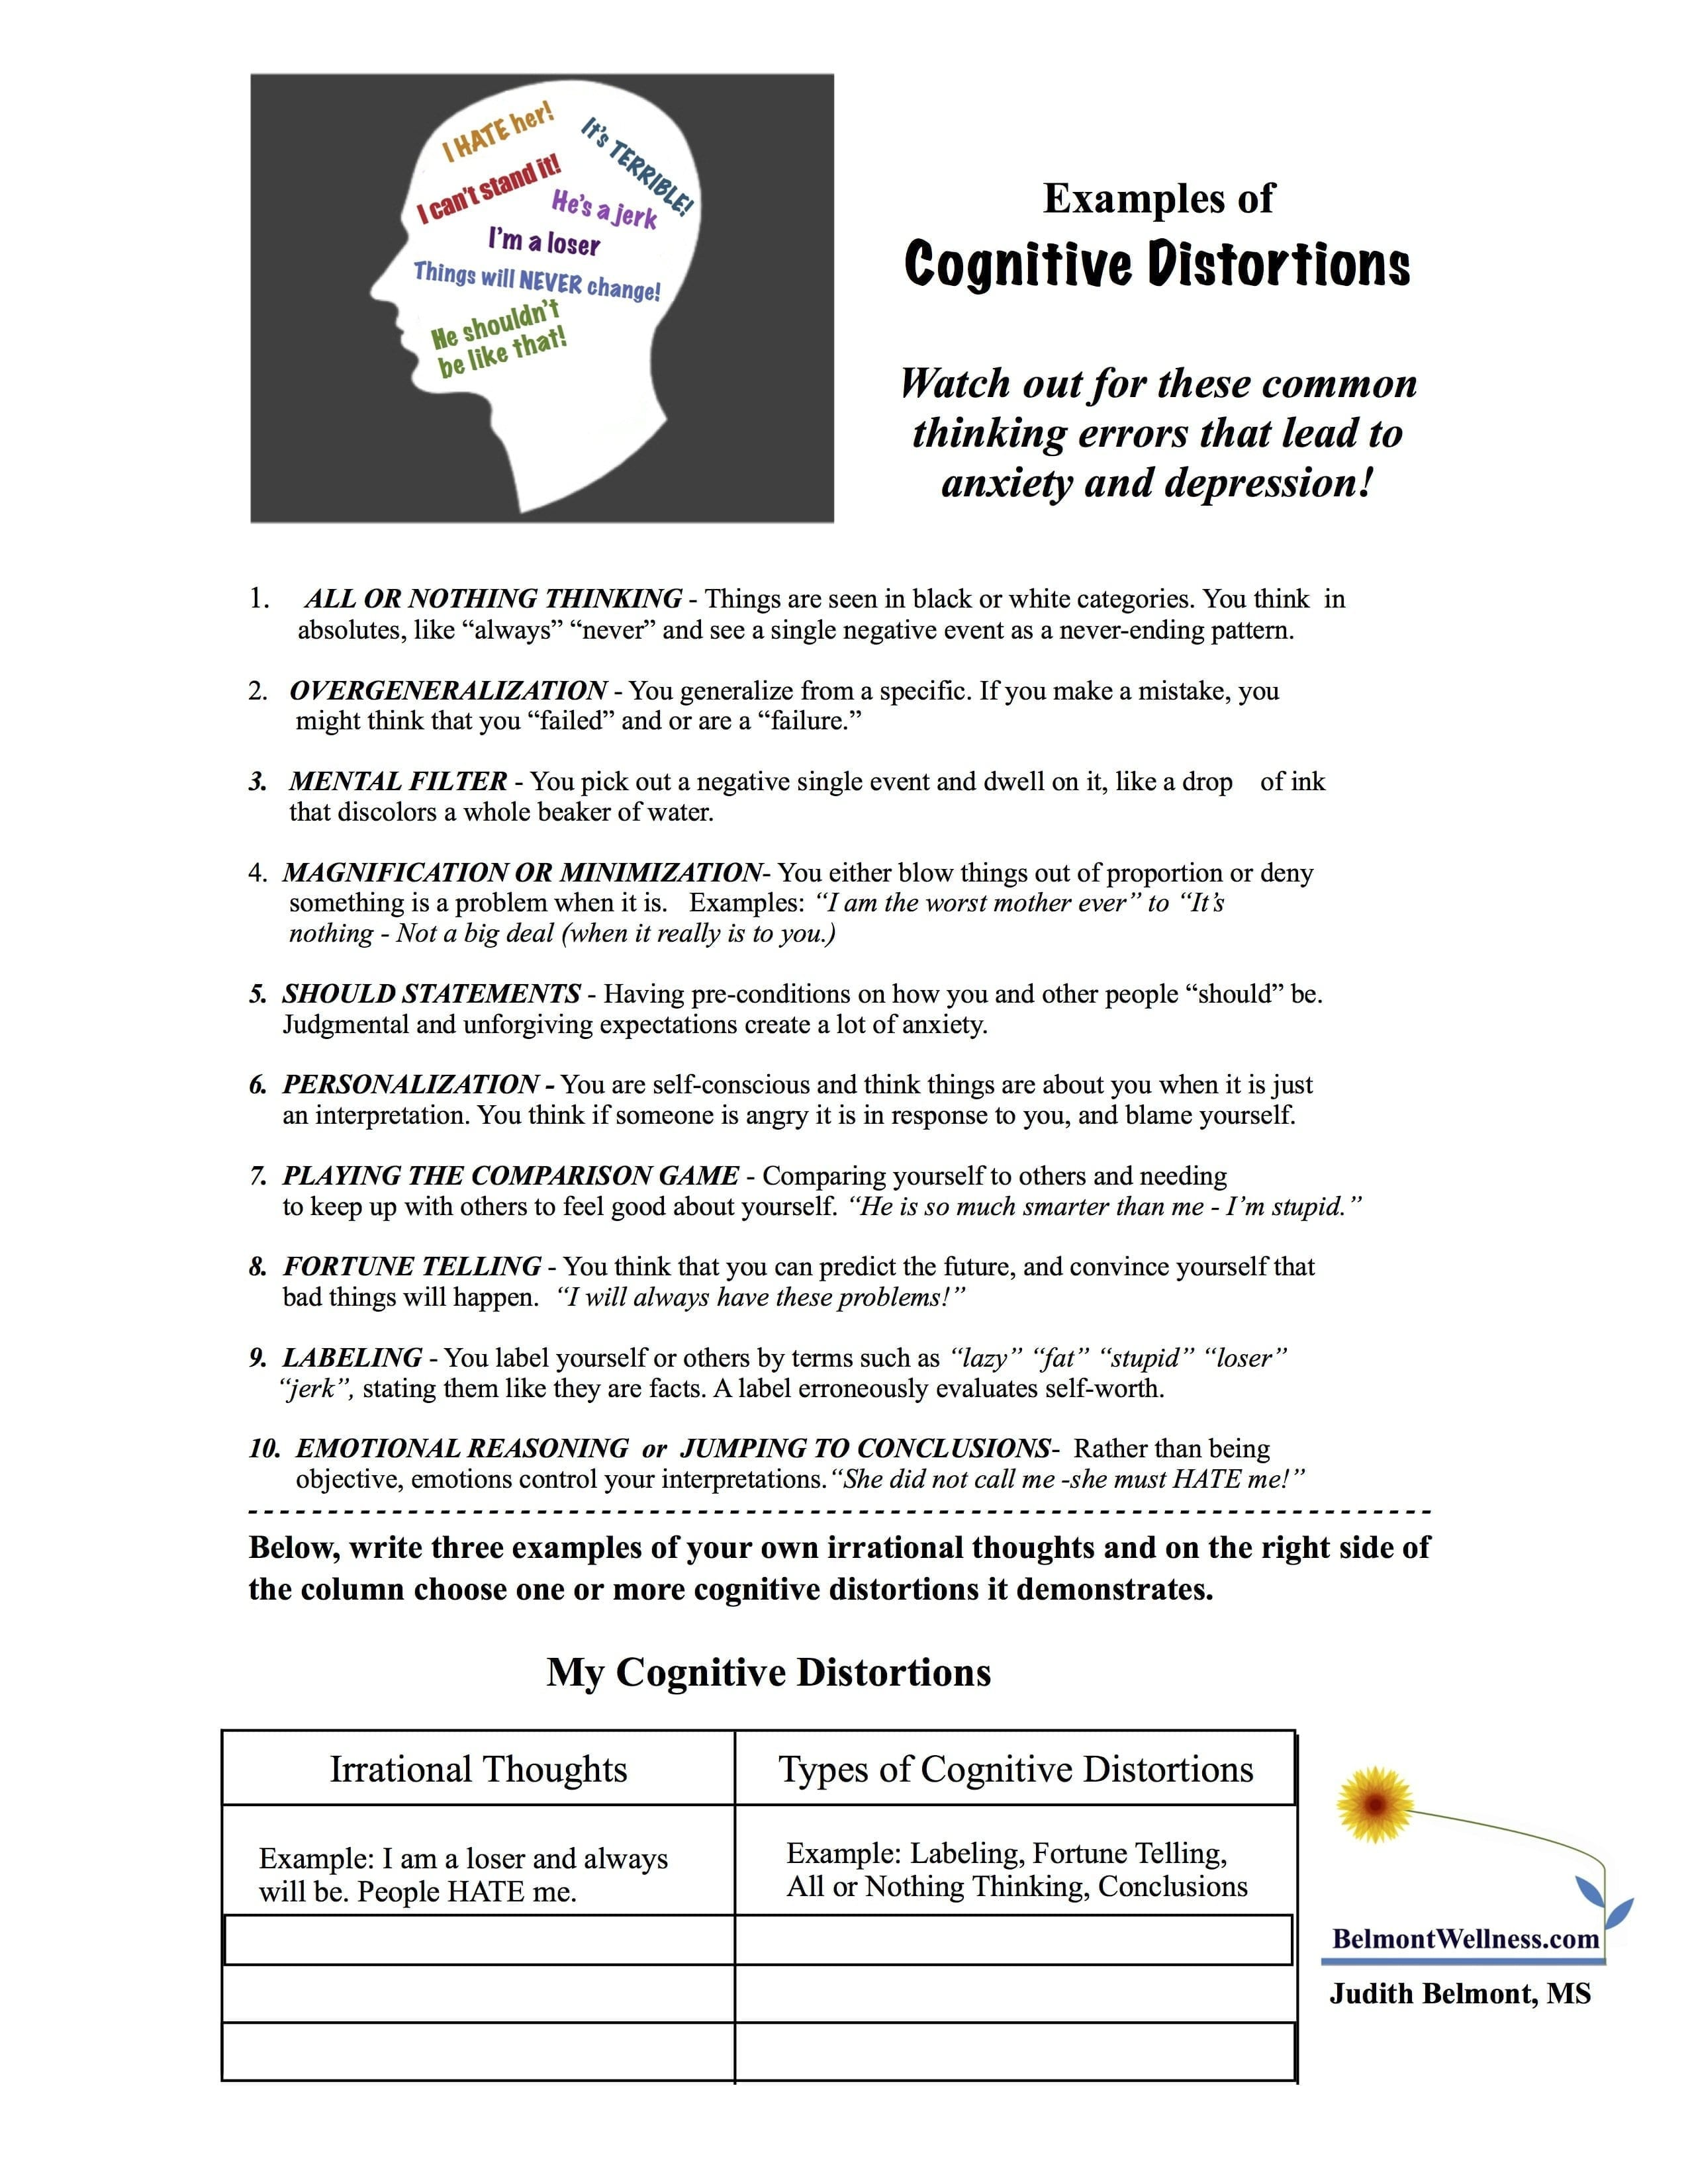 The Clinician's Mental Health And Wellness Bundle And Boundaries Worksheet Therapy